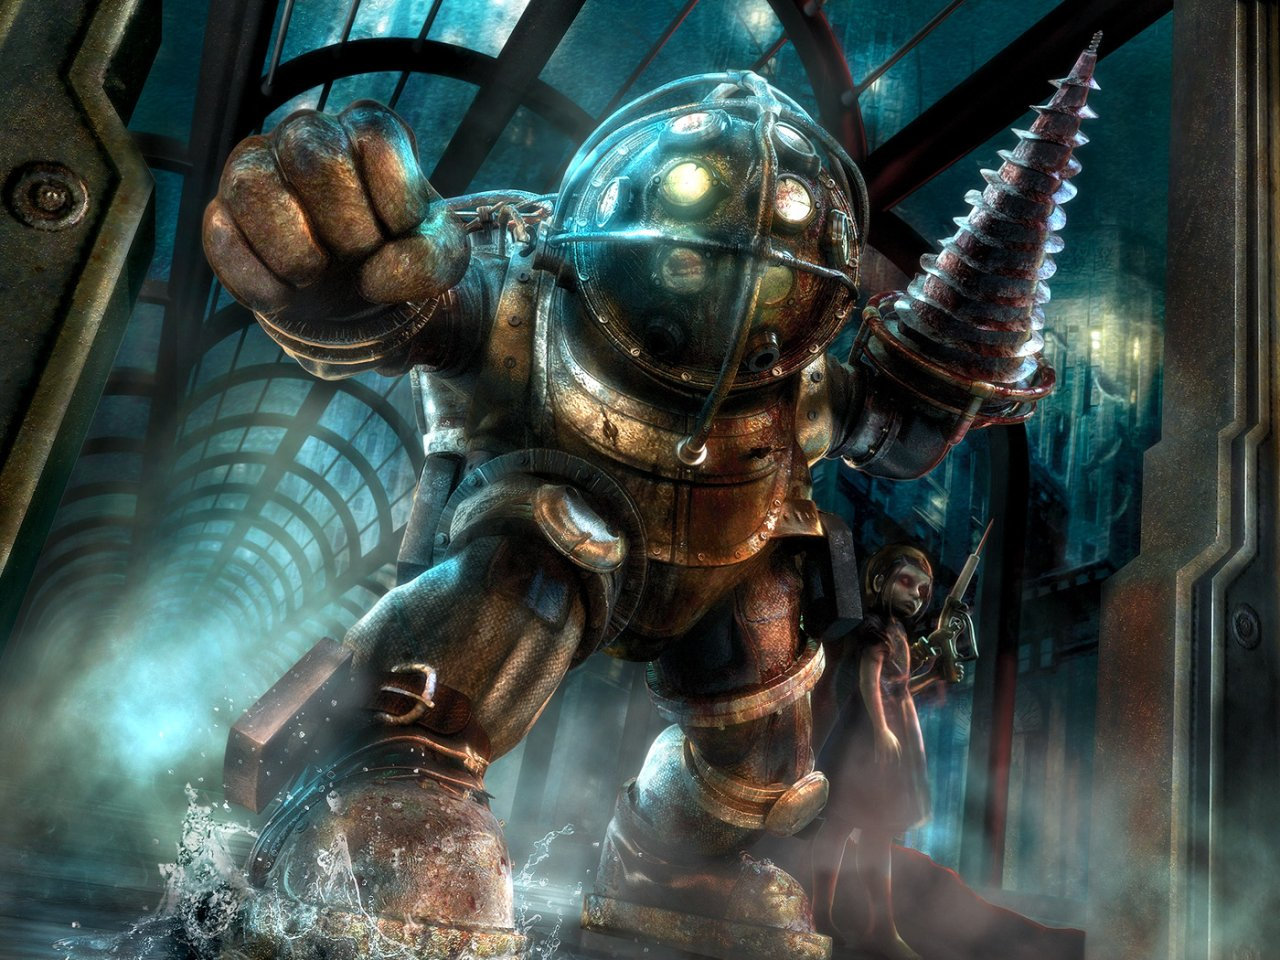 http://2.bp.blogspot.com/-TTLOcy5S4iY/UAOU_orrpgI/AAAAAAAABDM/y5Jt25fINsg/s1600/bioshock+bio+shock+big+daddy+protecting+little+sister+wallpaper+background+2k+fps+first+person+shooter+horror.jpg